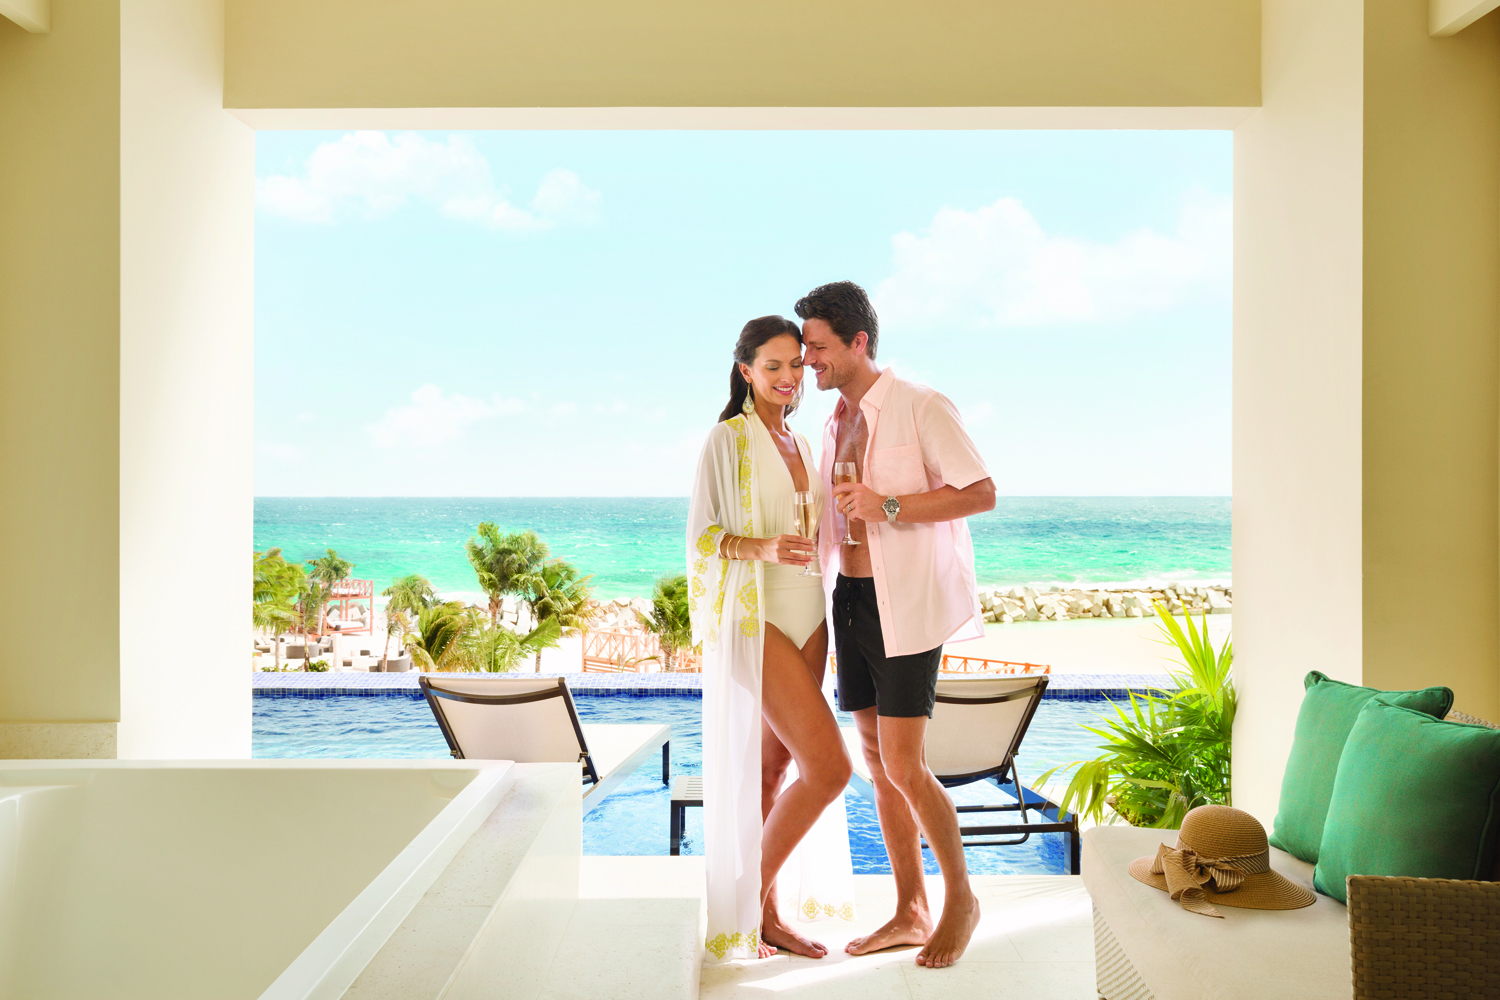 The adults-only Turquoize, the resort within a resort at Hyatt Ziva Cancun, is ideal for clients looking for a relaxing getaway.